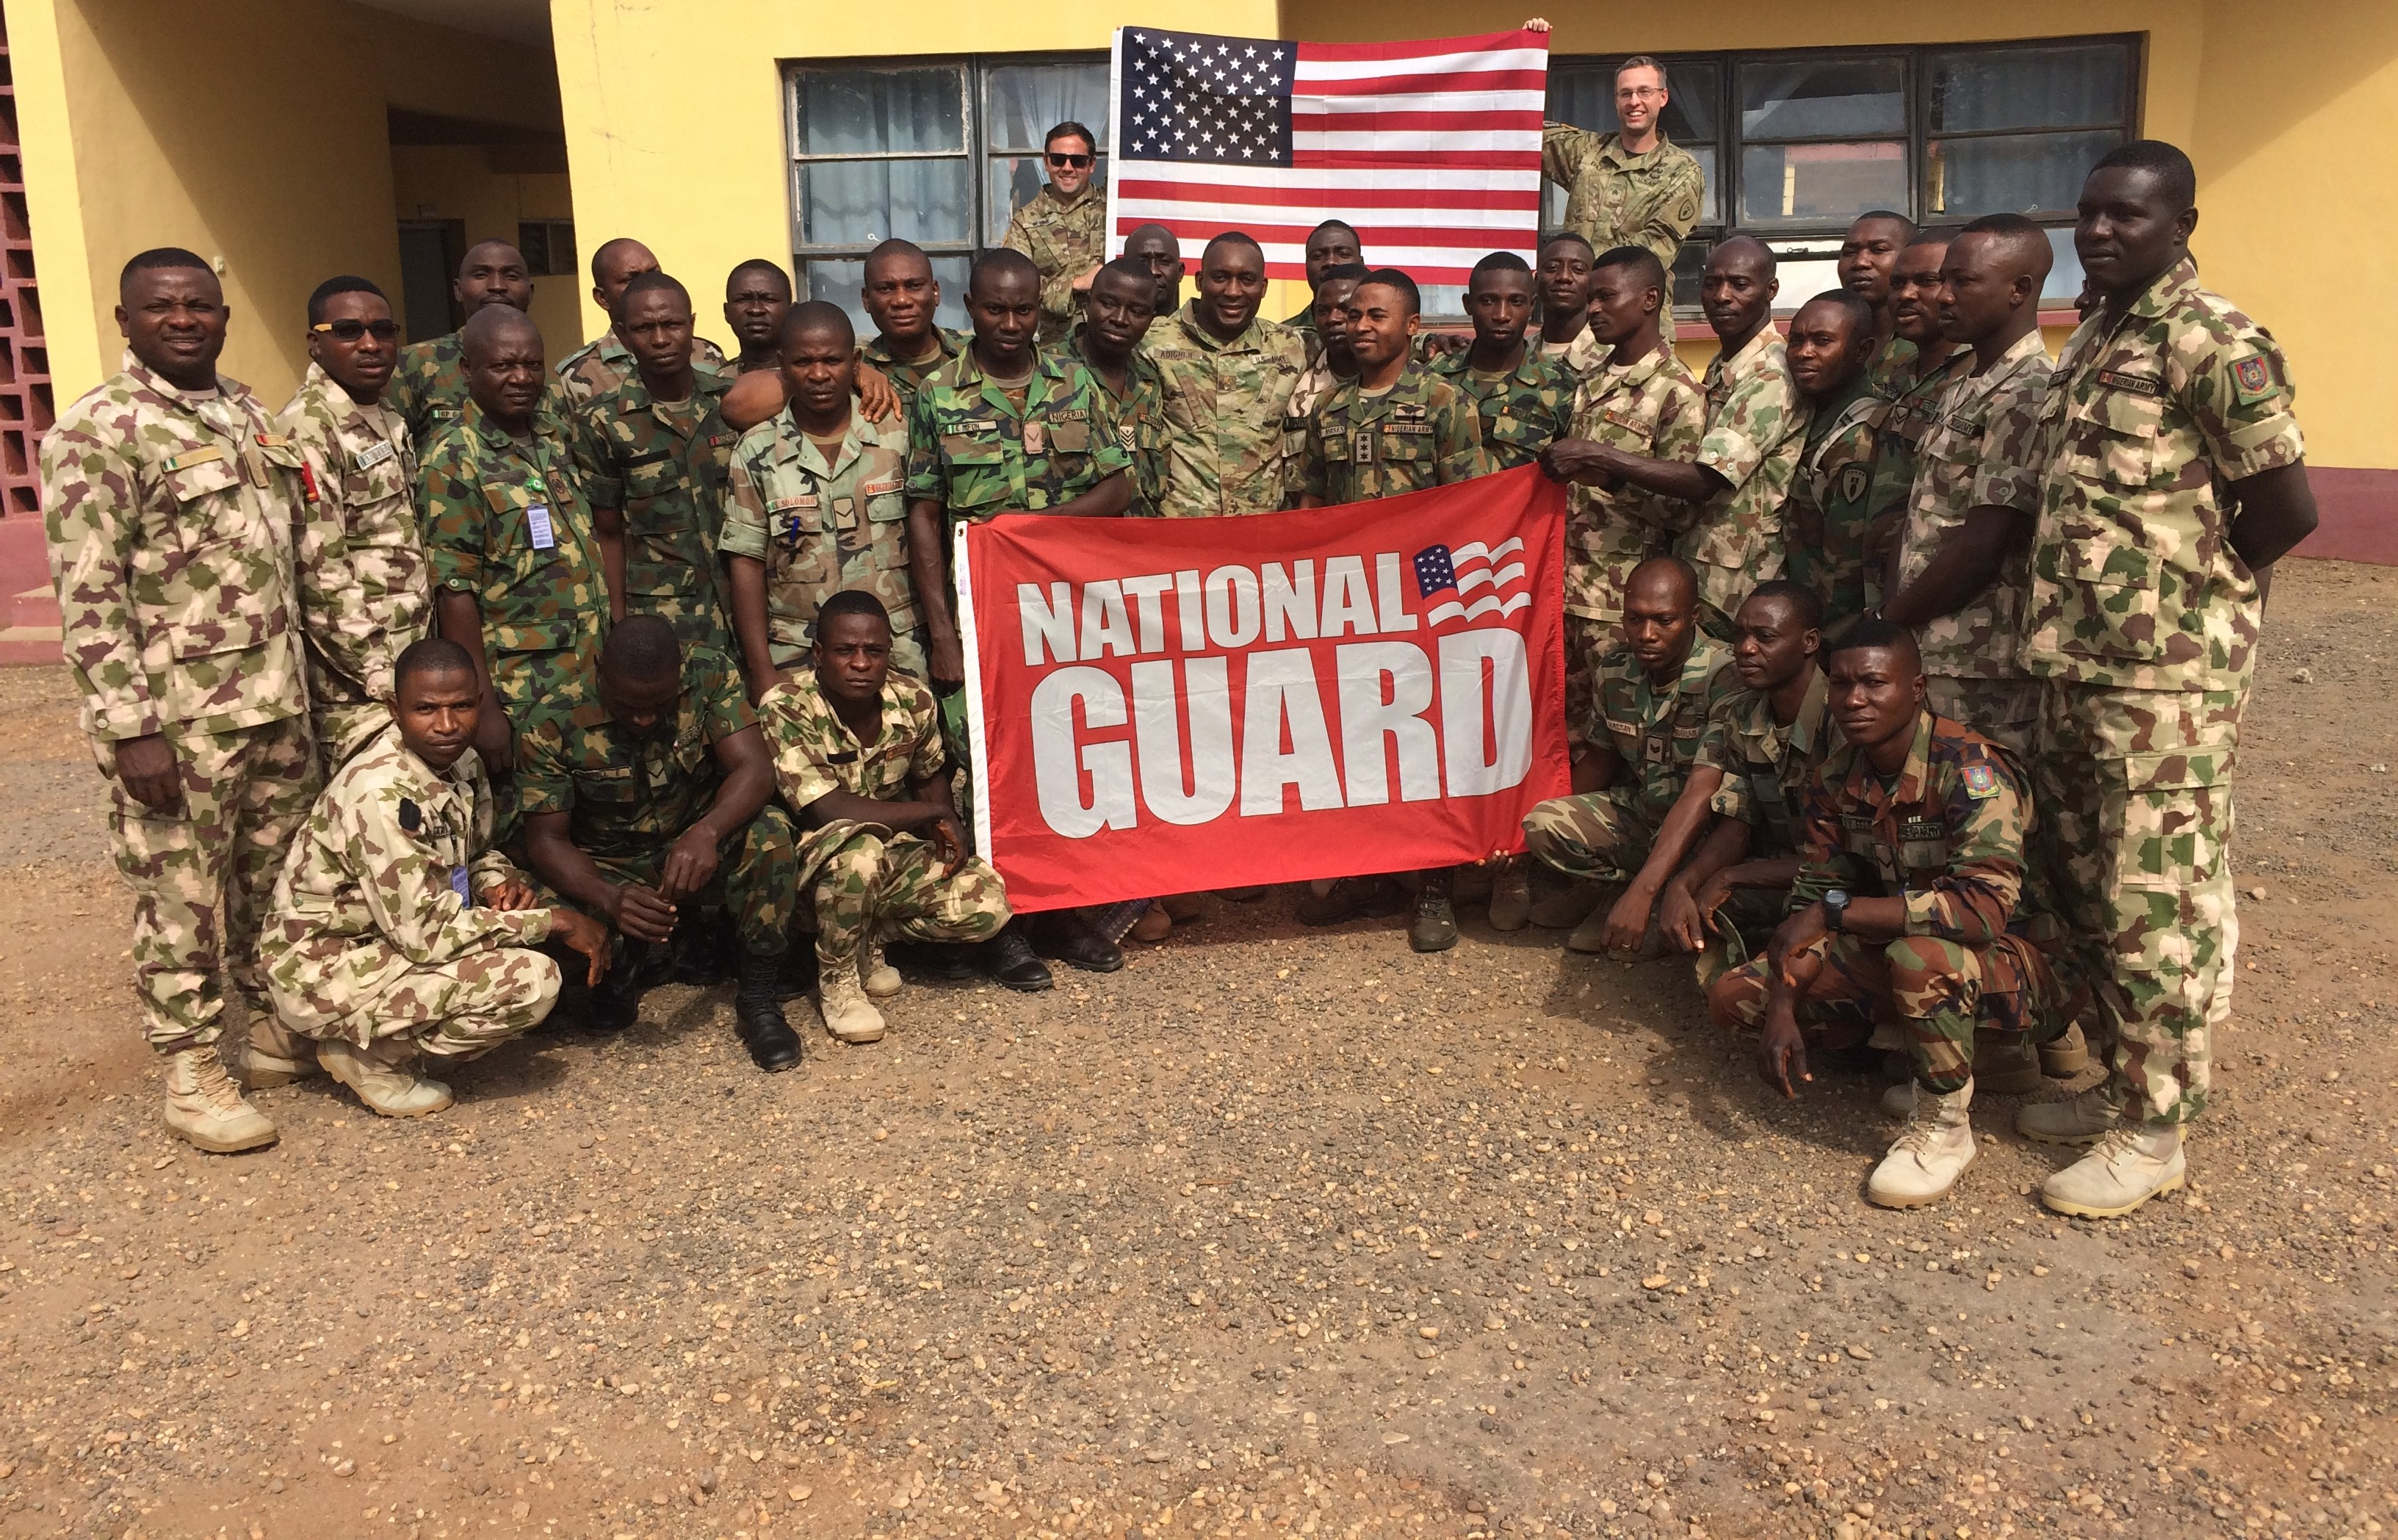 MAJ Chiddy Adighije, California National Guard and Nigeria Bilateral Affairs Officer and members of the Nigerian Army pose for a photo to celebrate the National Guard Birthday.